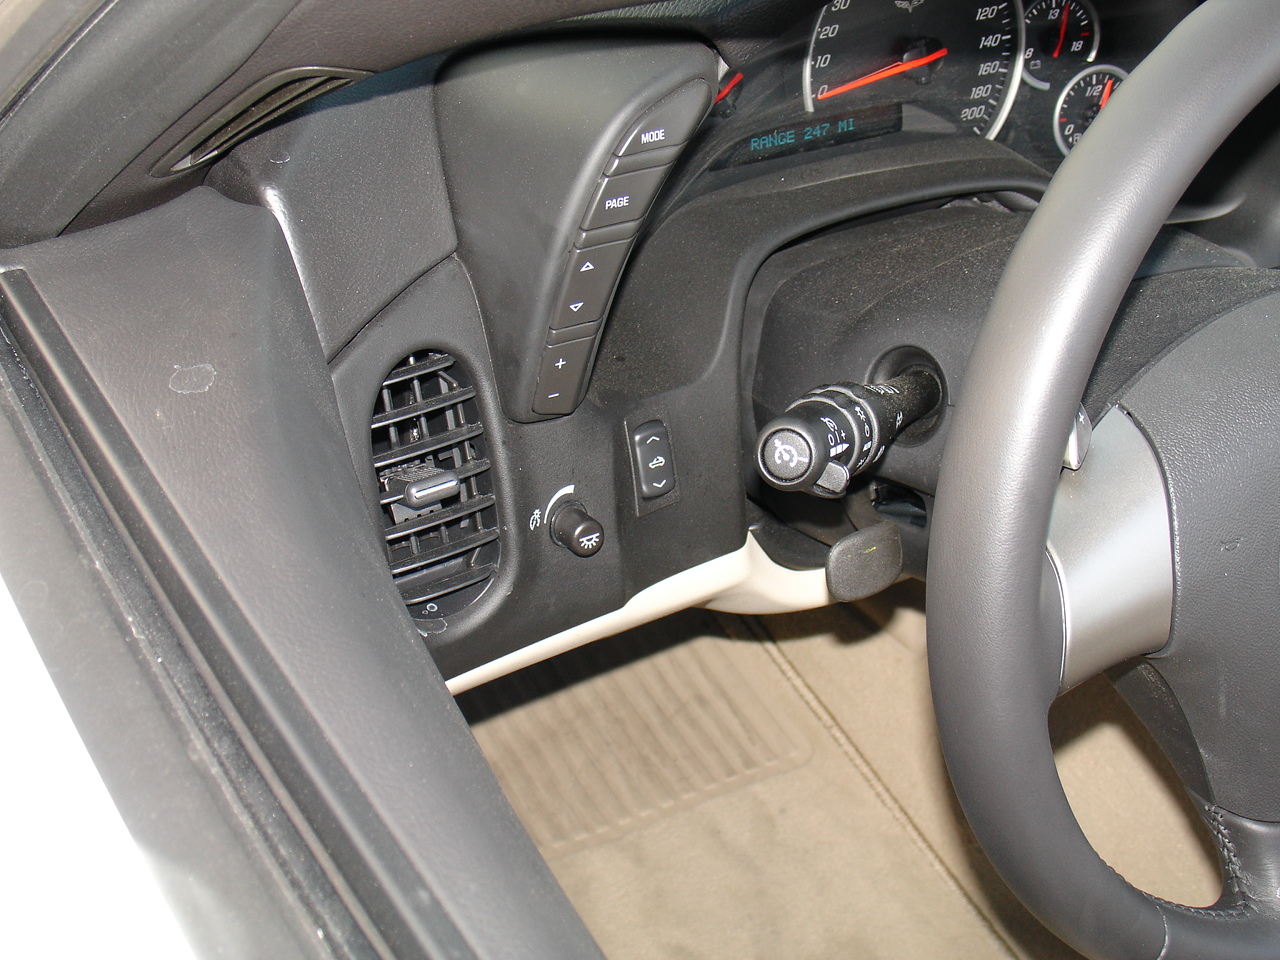 2008 Chevrolet Corvette Convertible - power switch